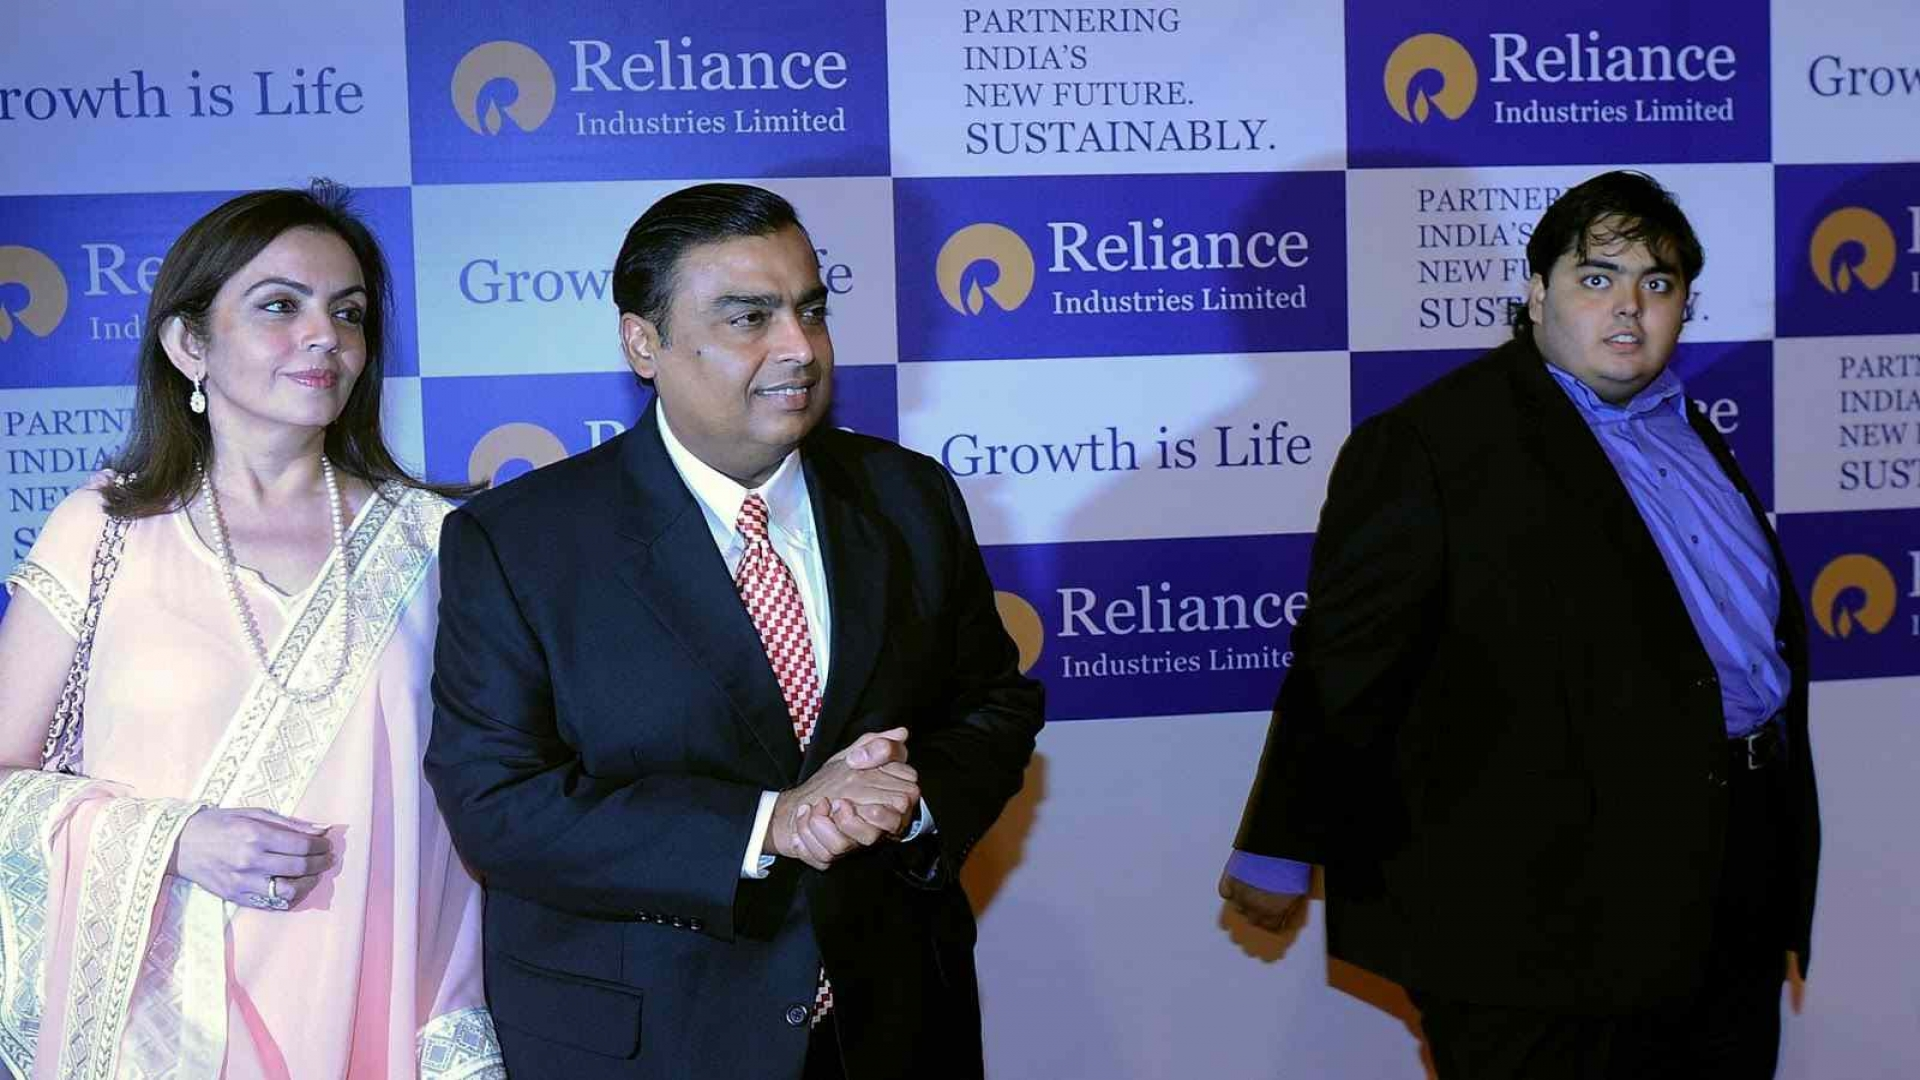 objective of reliance company of ambani Mukesh ambani: mukesh ambani, yemeni-born indian business mogul who is the chairman and managing director of the indian conglomerate reliance industries limited (ril), the foremost company of the indian energy and materials conglomerate reliance group.